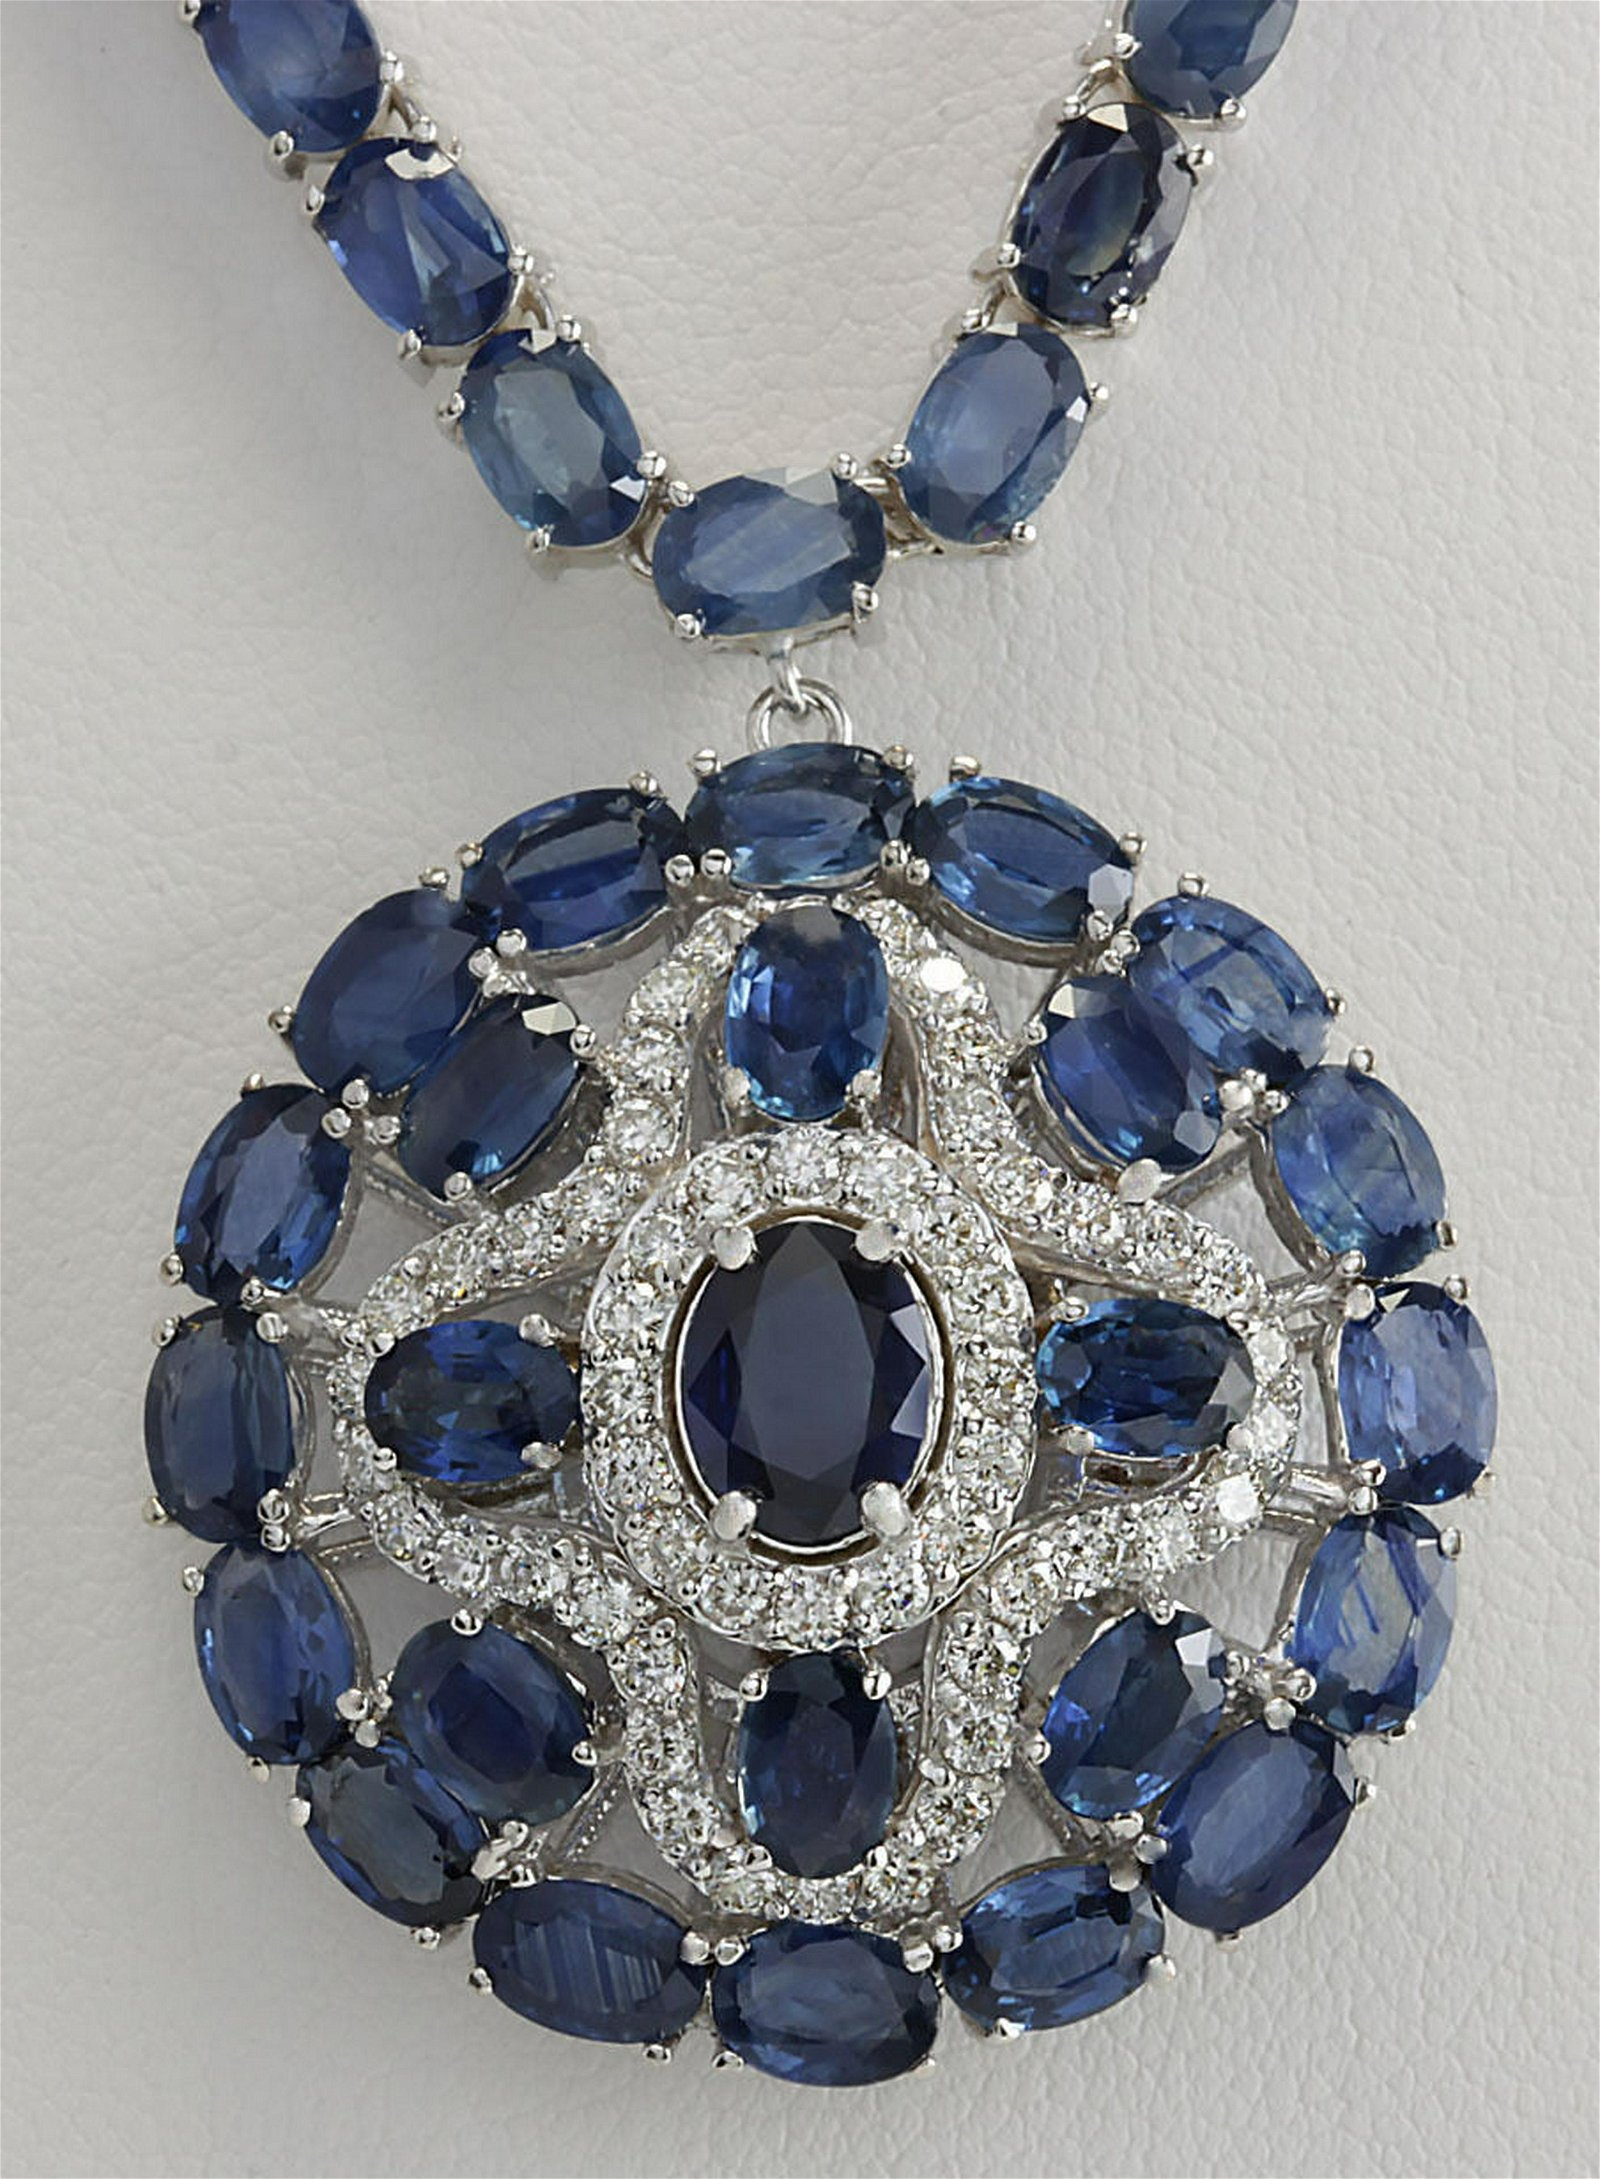 57.24Carat Natural Blue Sapphire And Diamond Necklace